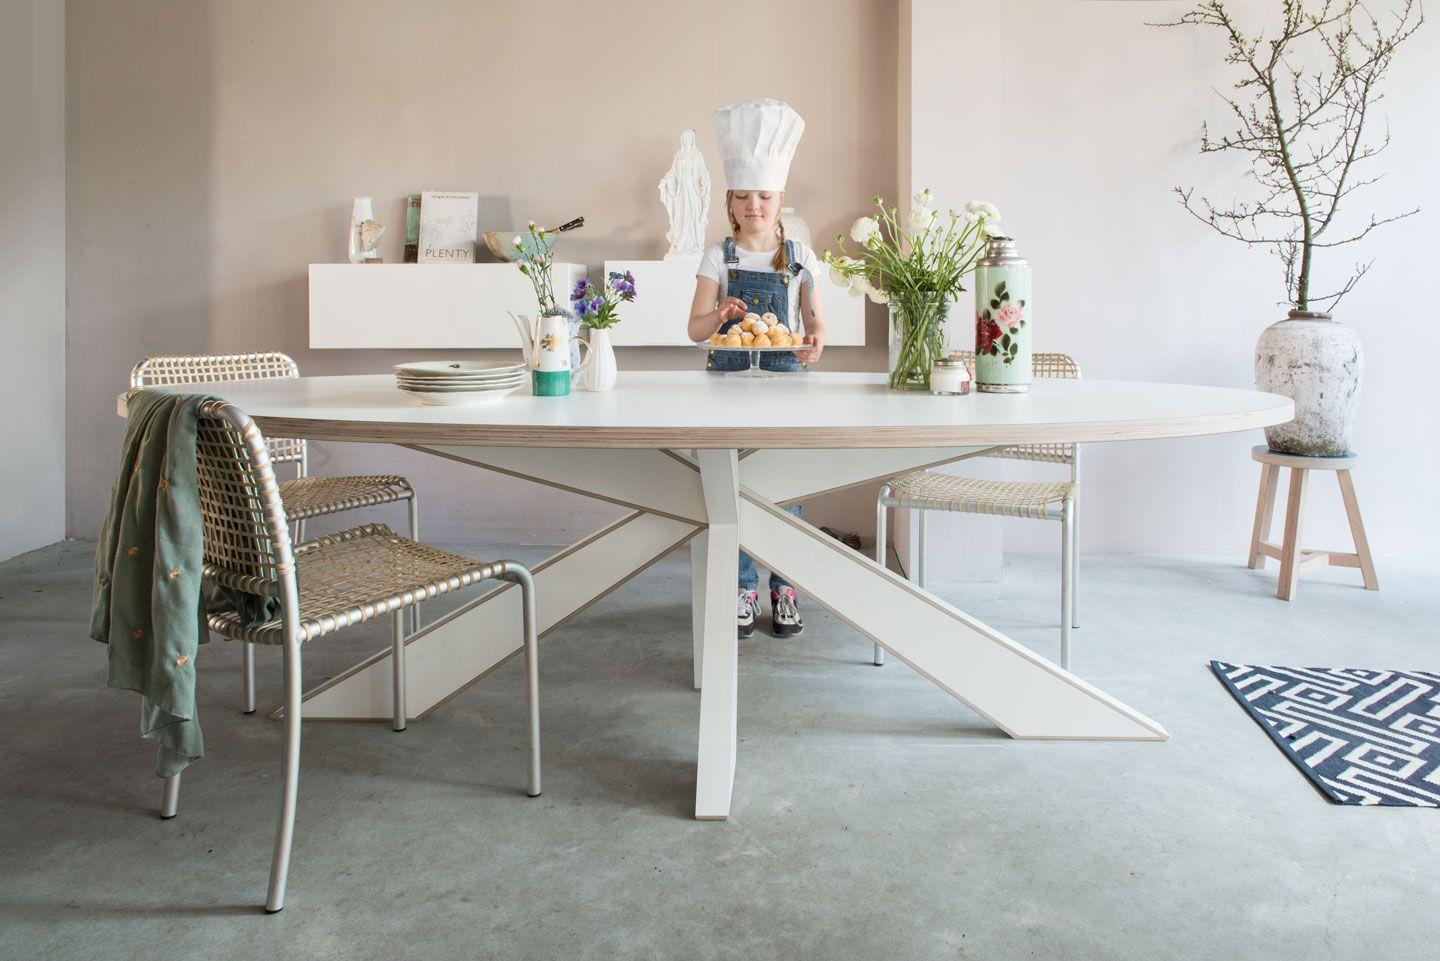 Design Witte Eettafel.Longlegs Cc In 2019 Eettafel Table Dining Table En Design